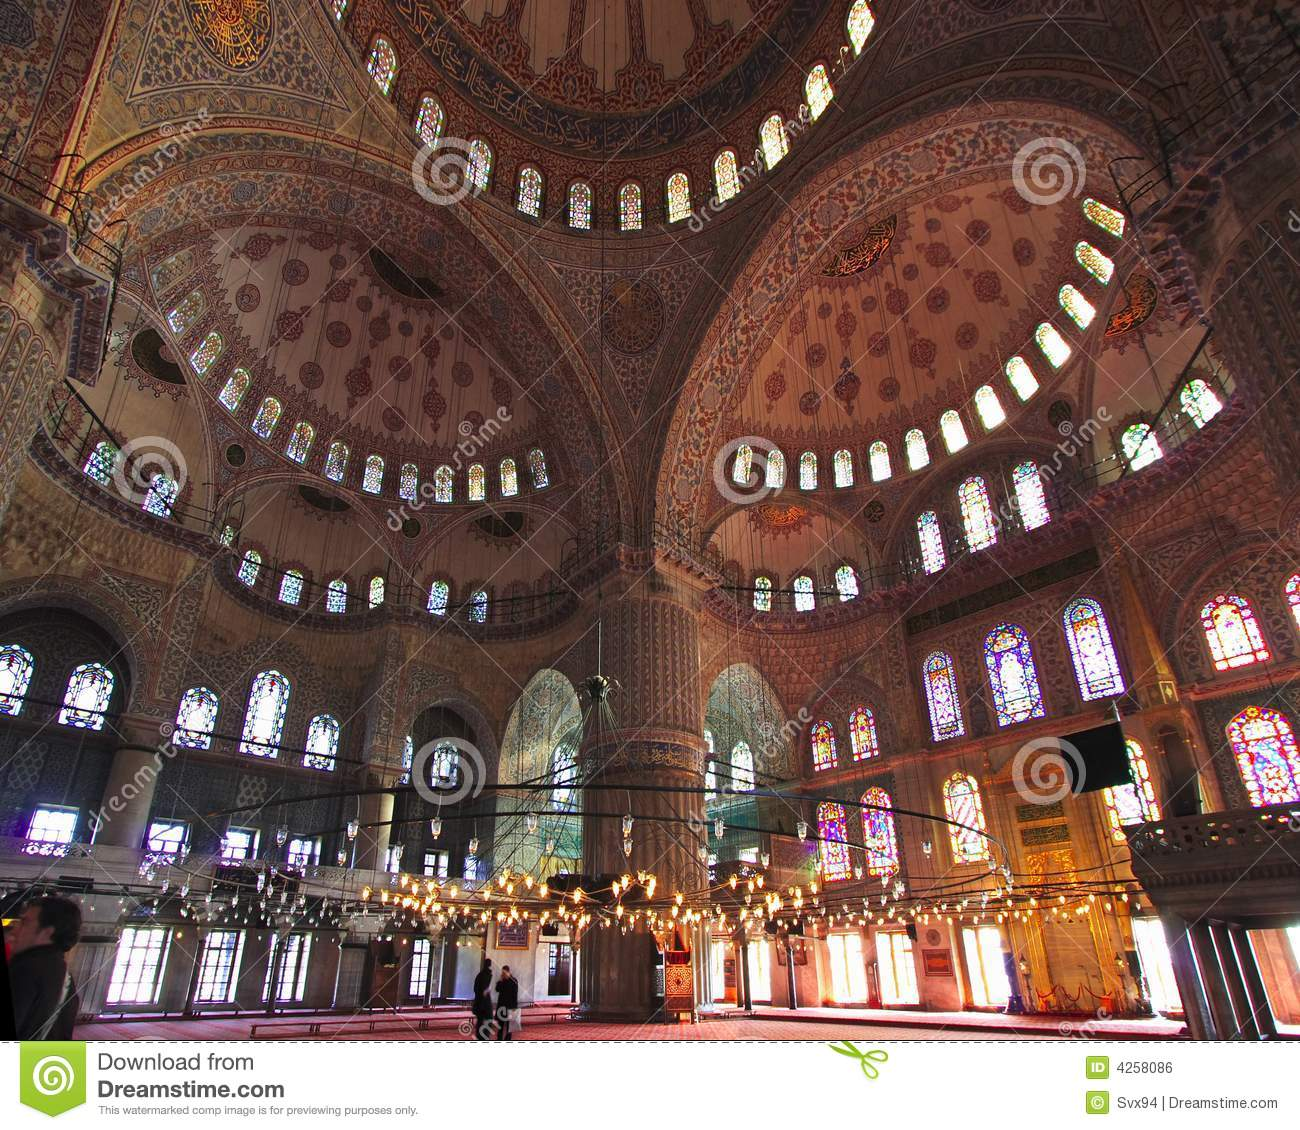 The Sultan Ahmed Mosque - Blue Mosque of Istanbul